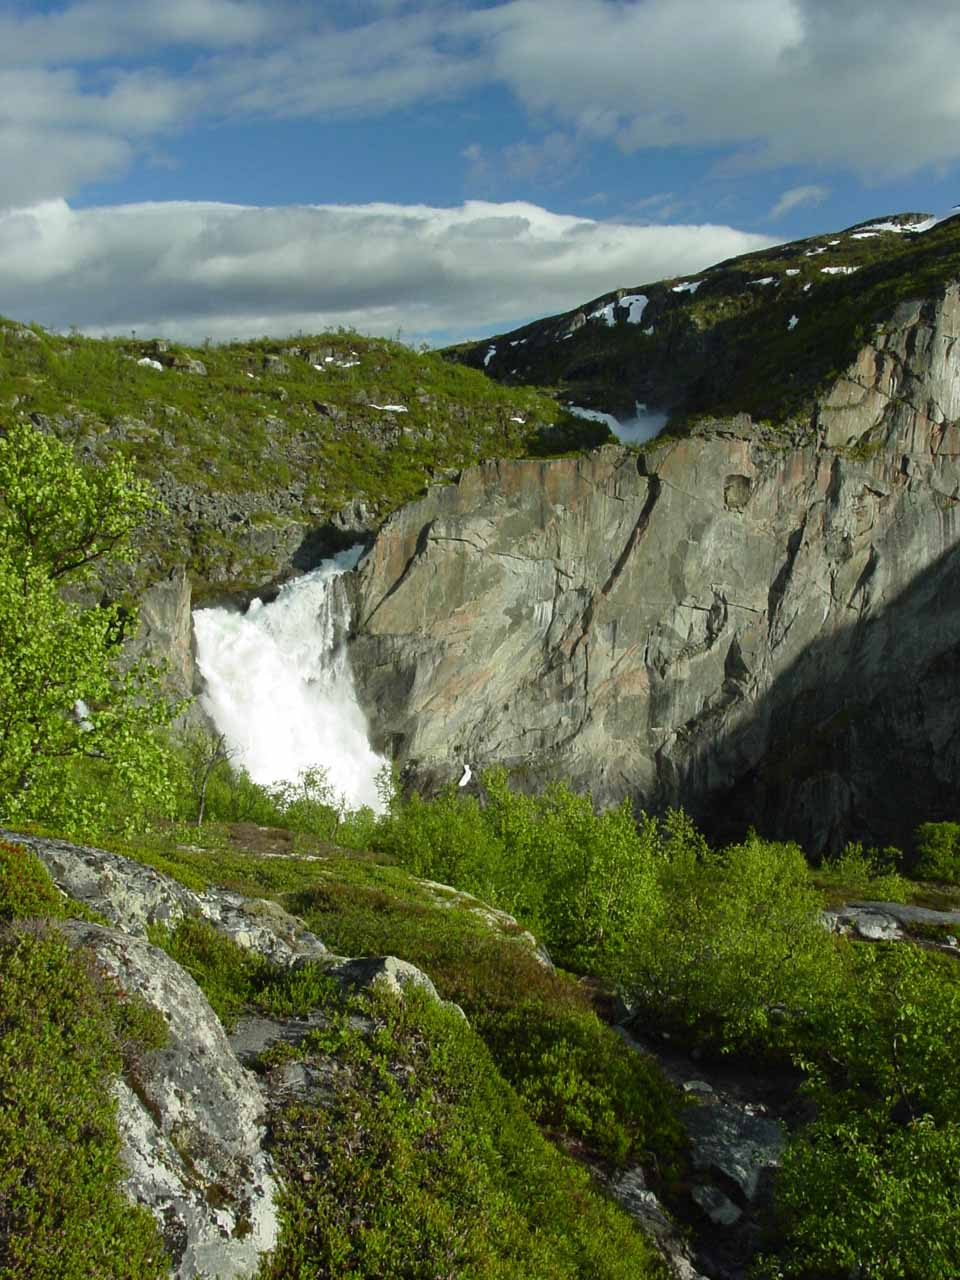 Once we got to this point, we had to scramble around to improve our view of Valursfossen